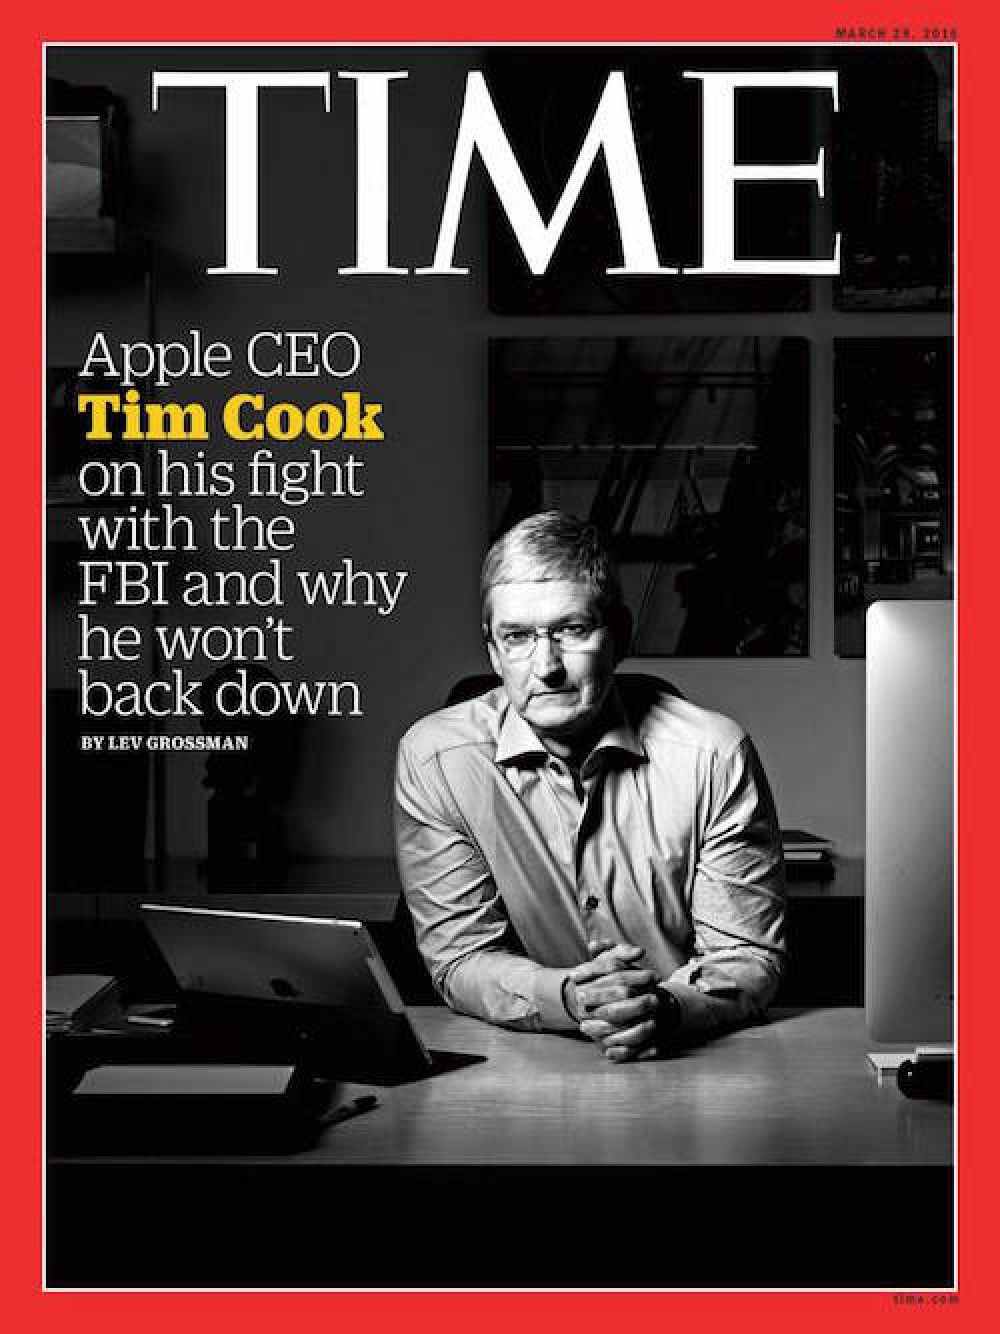 Tim Cook Featured on Cover of TIME Magazine in New Apple-FBI Interview - Mac Rumors